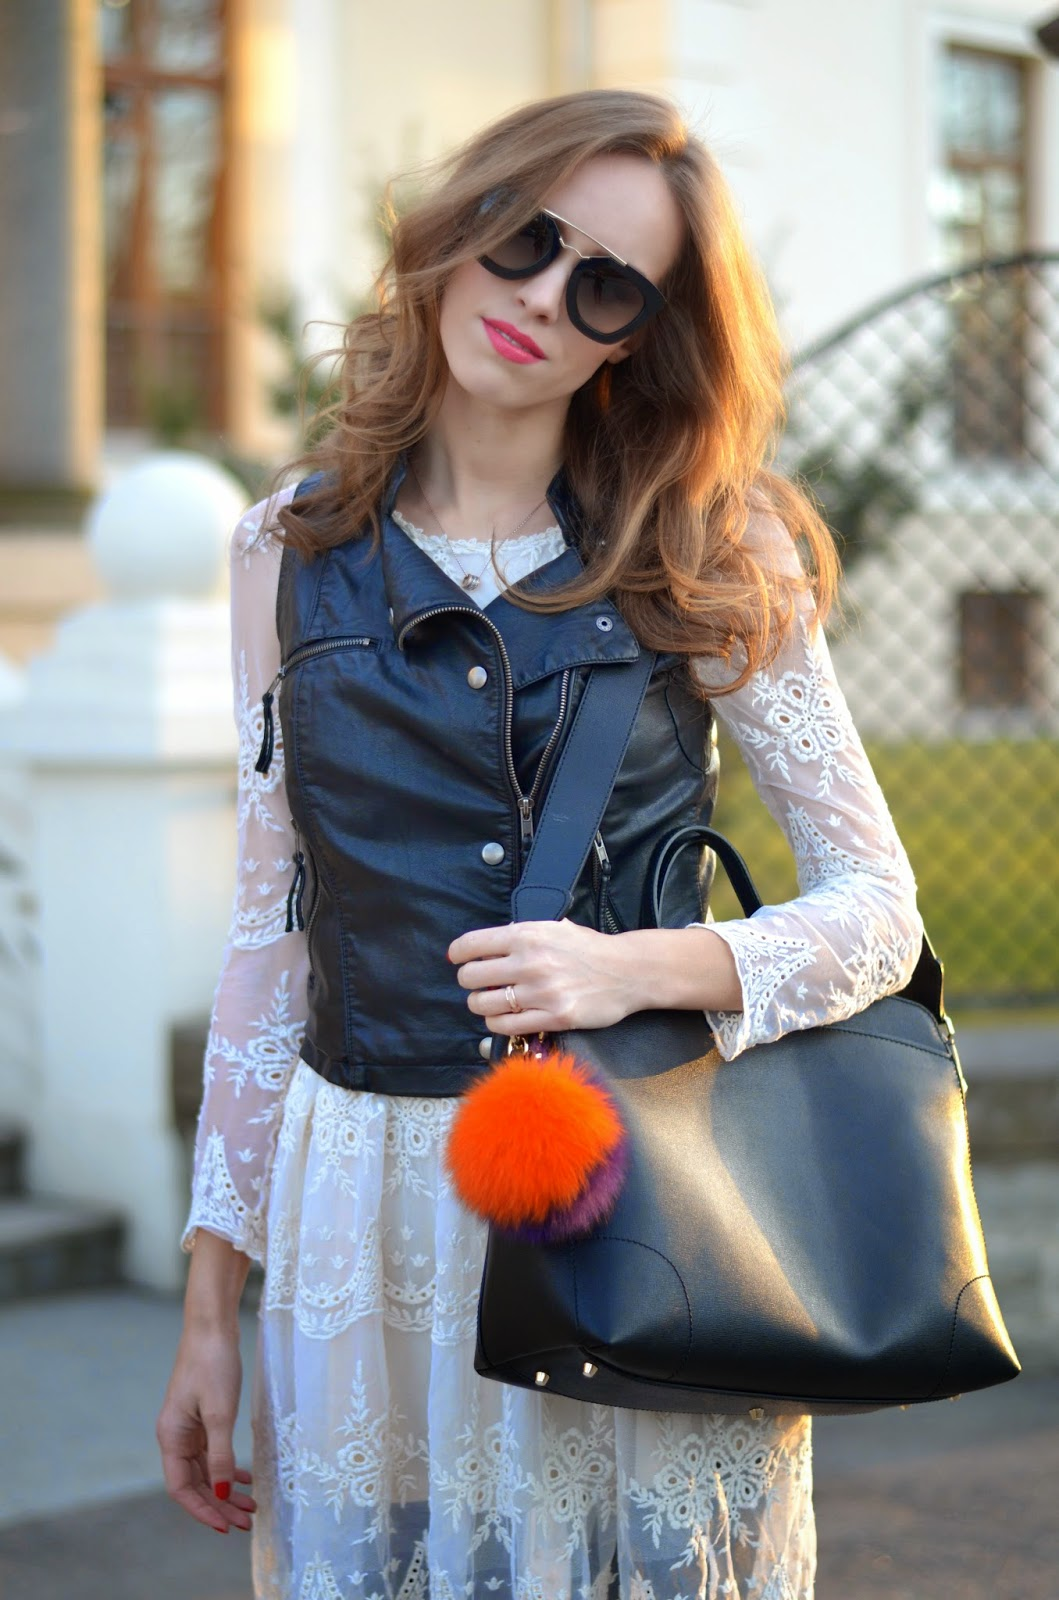 black-leather-vest-white-lace-dress-spring-outfit-inspiration-fashion-street-style kristjaana mere